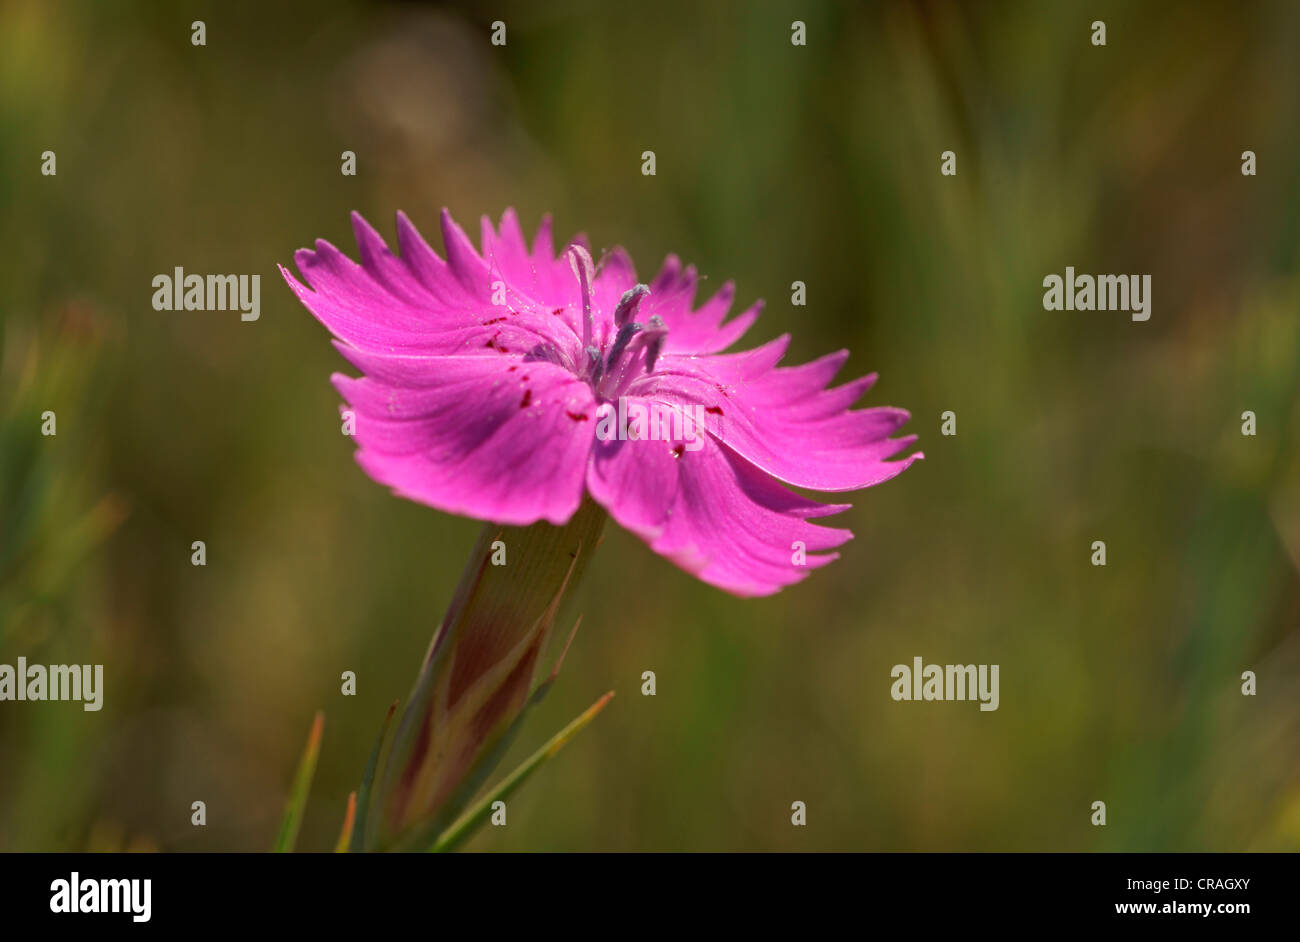 Carnation (Dianthus), Bulgaria, Europe - Stock Image